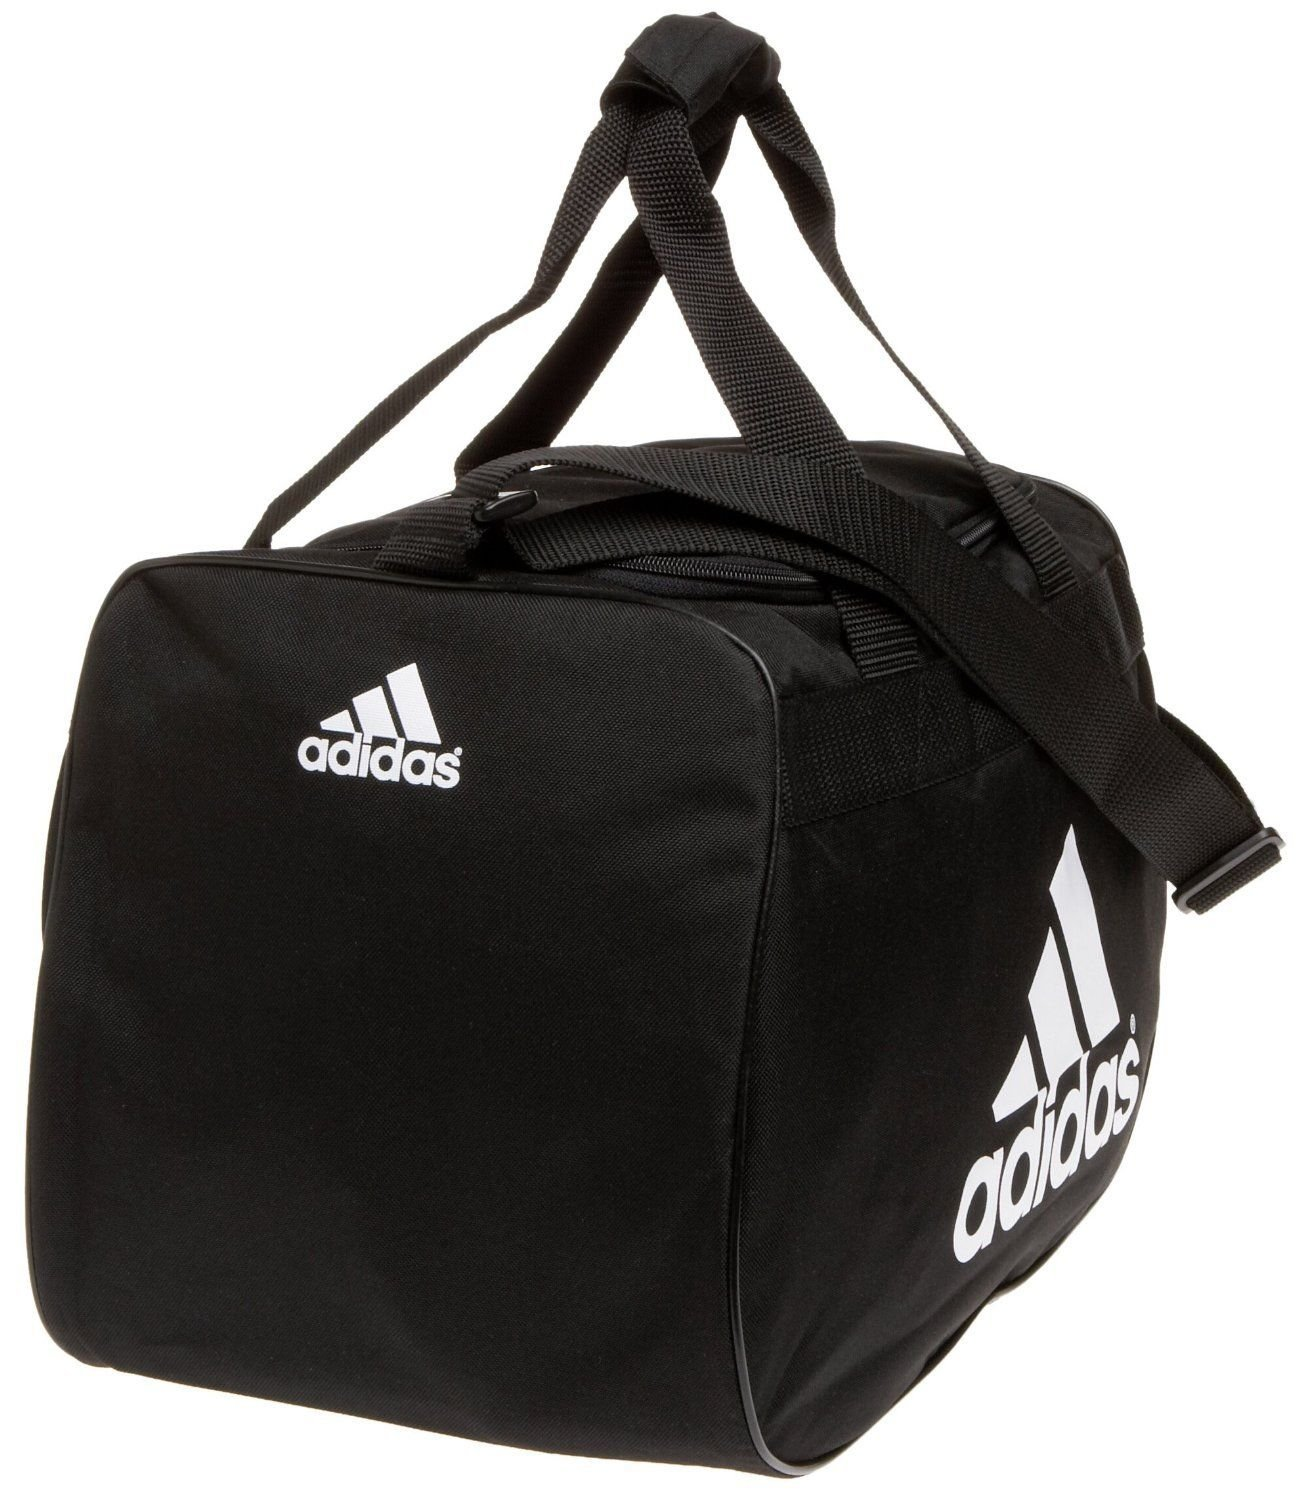 d0dd88b9f0 Amazon.com  adidas Diablo Duffel Bag  Adidas  Sports   Outdoors